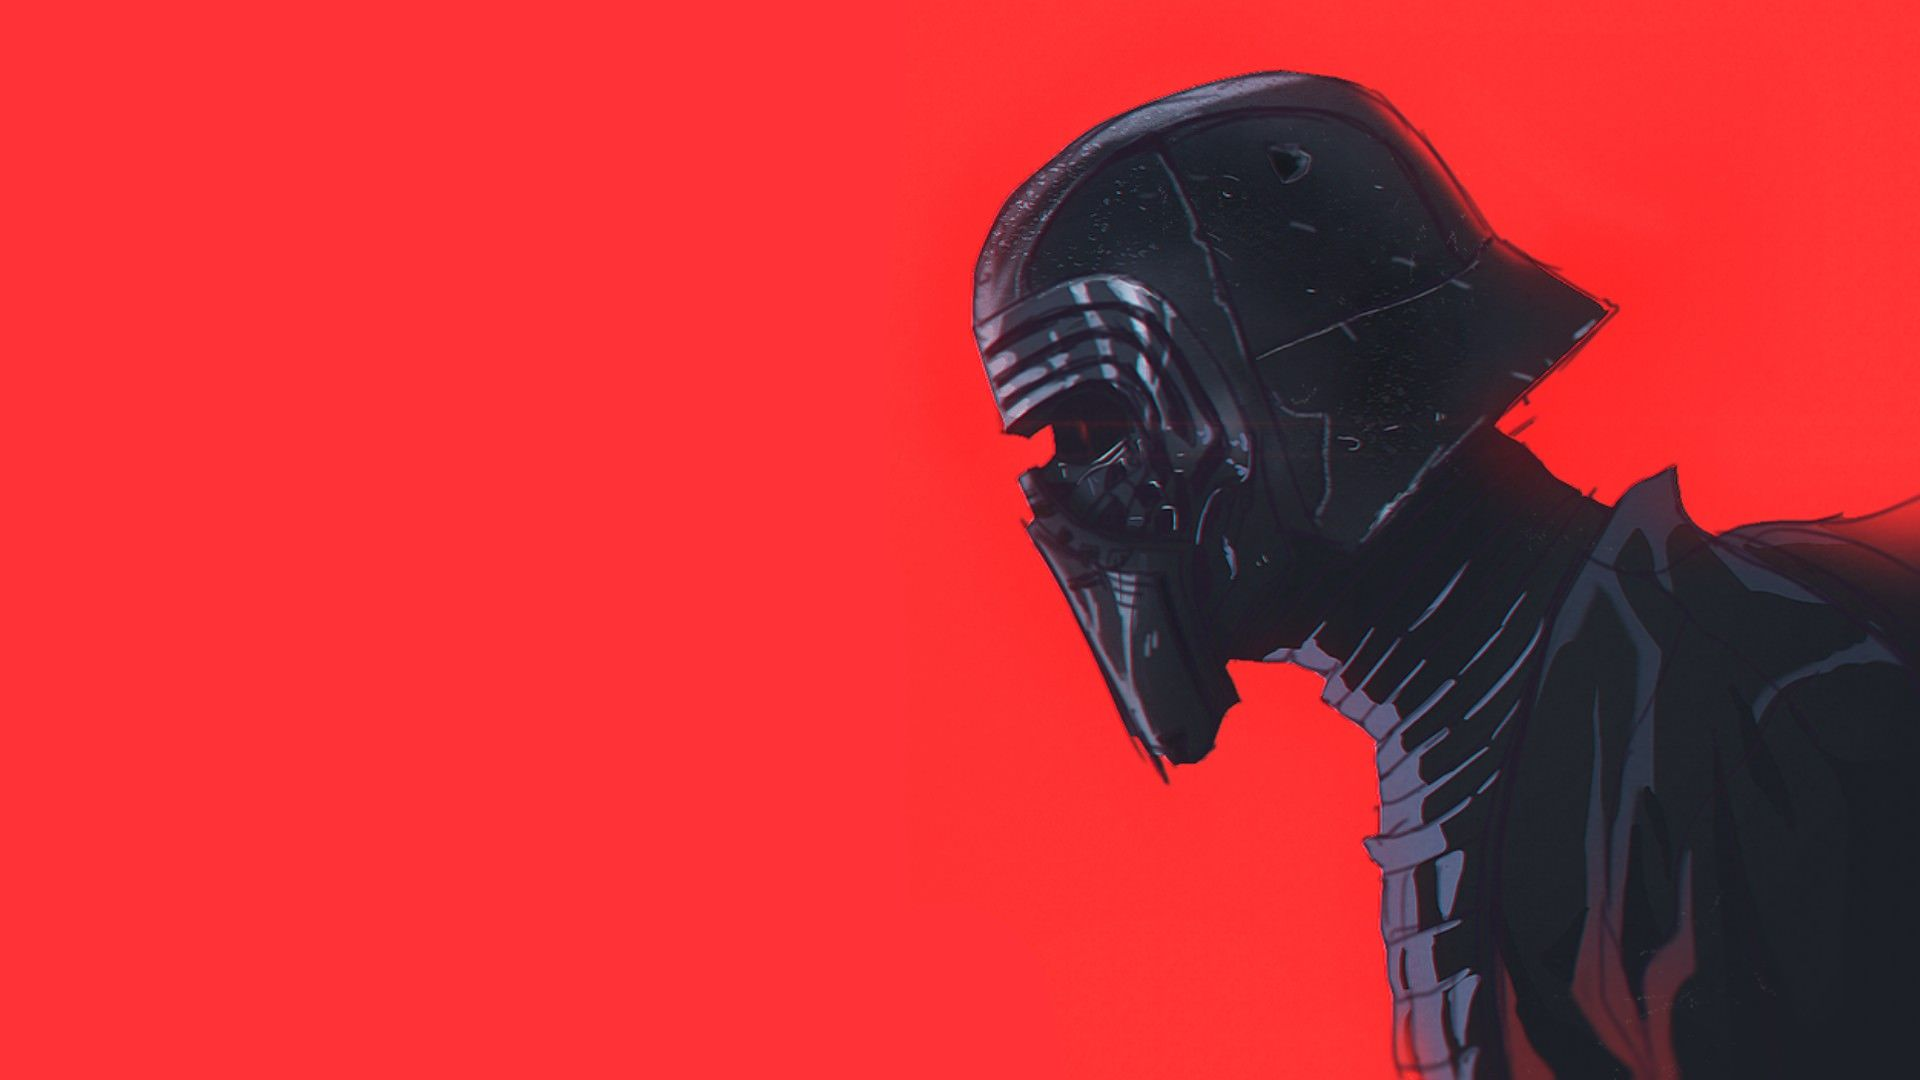 Kylo Ren Kylo Ren Wallpaper Star Wars Wallpaper Background Hd Wallpaper